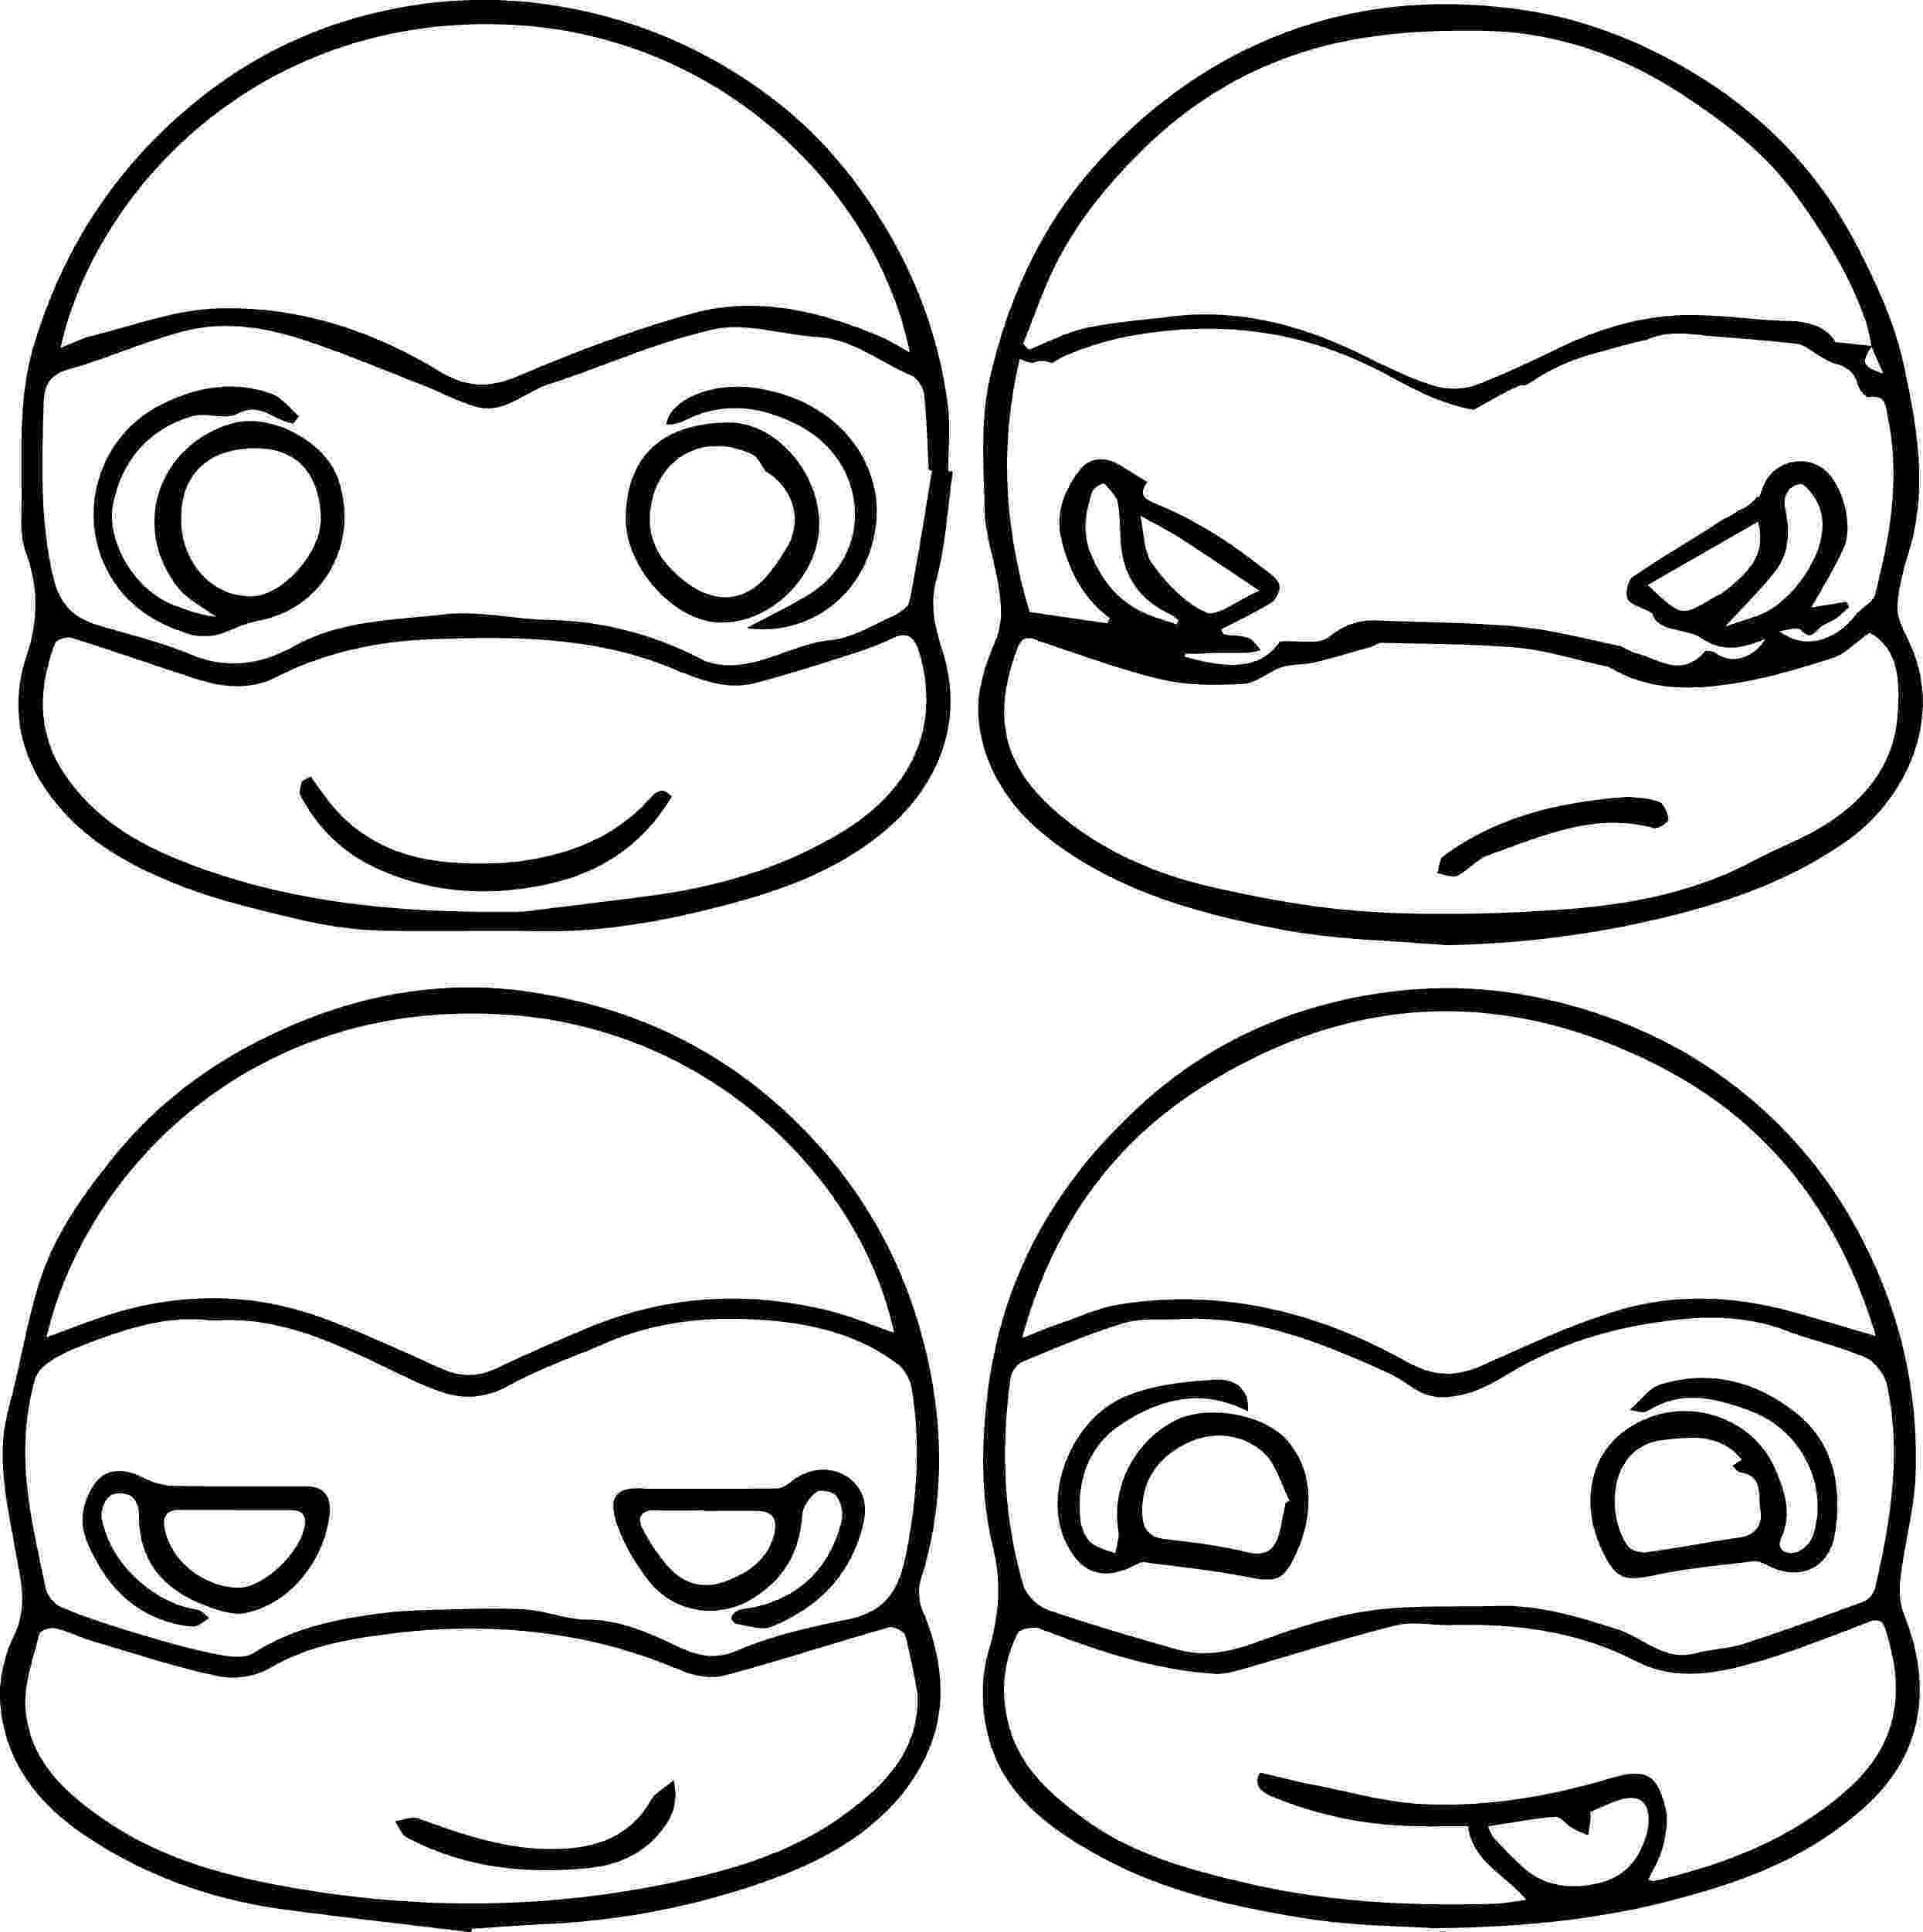 free tmnt coloring pages teenage mutant ninja turtles coloring pages best tmnt pages free coloring